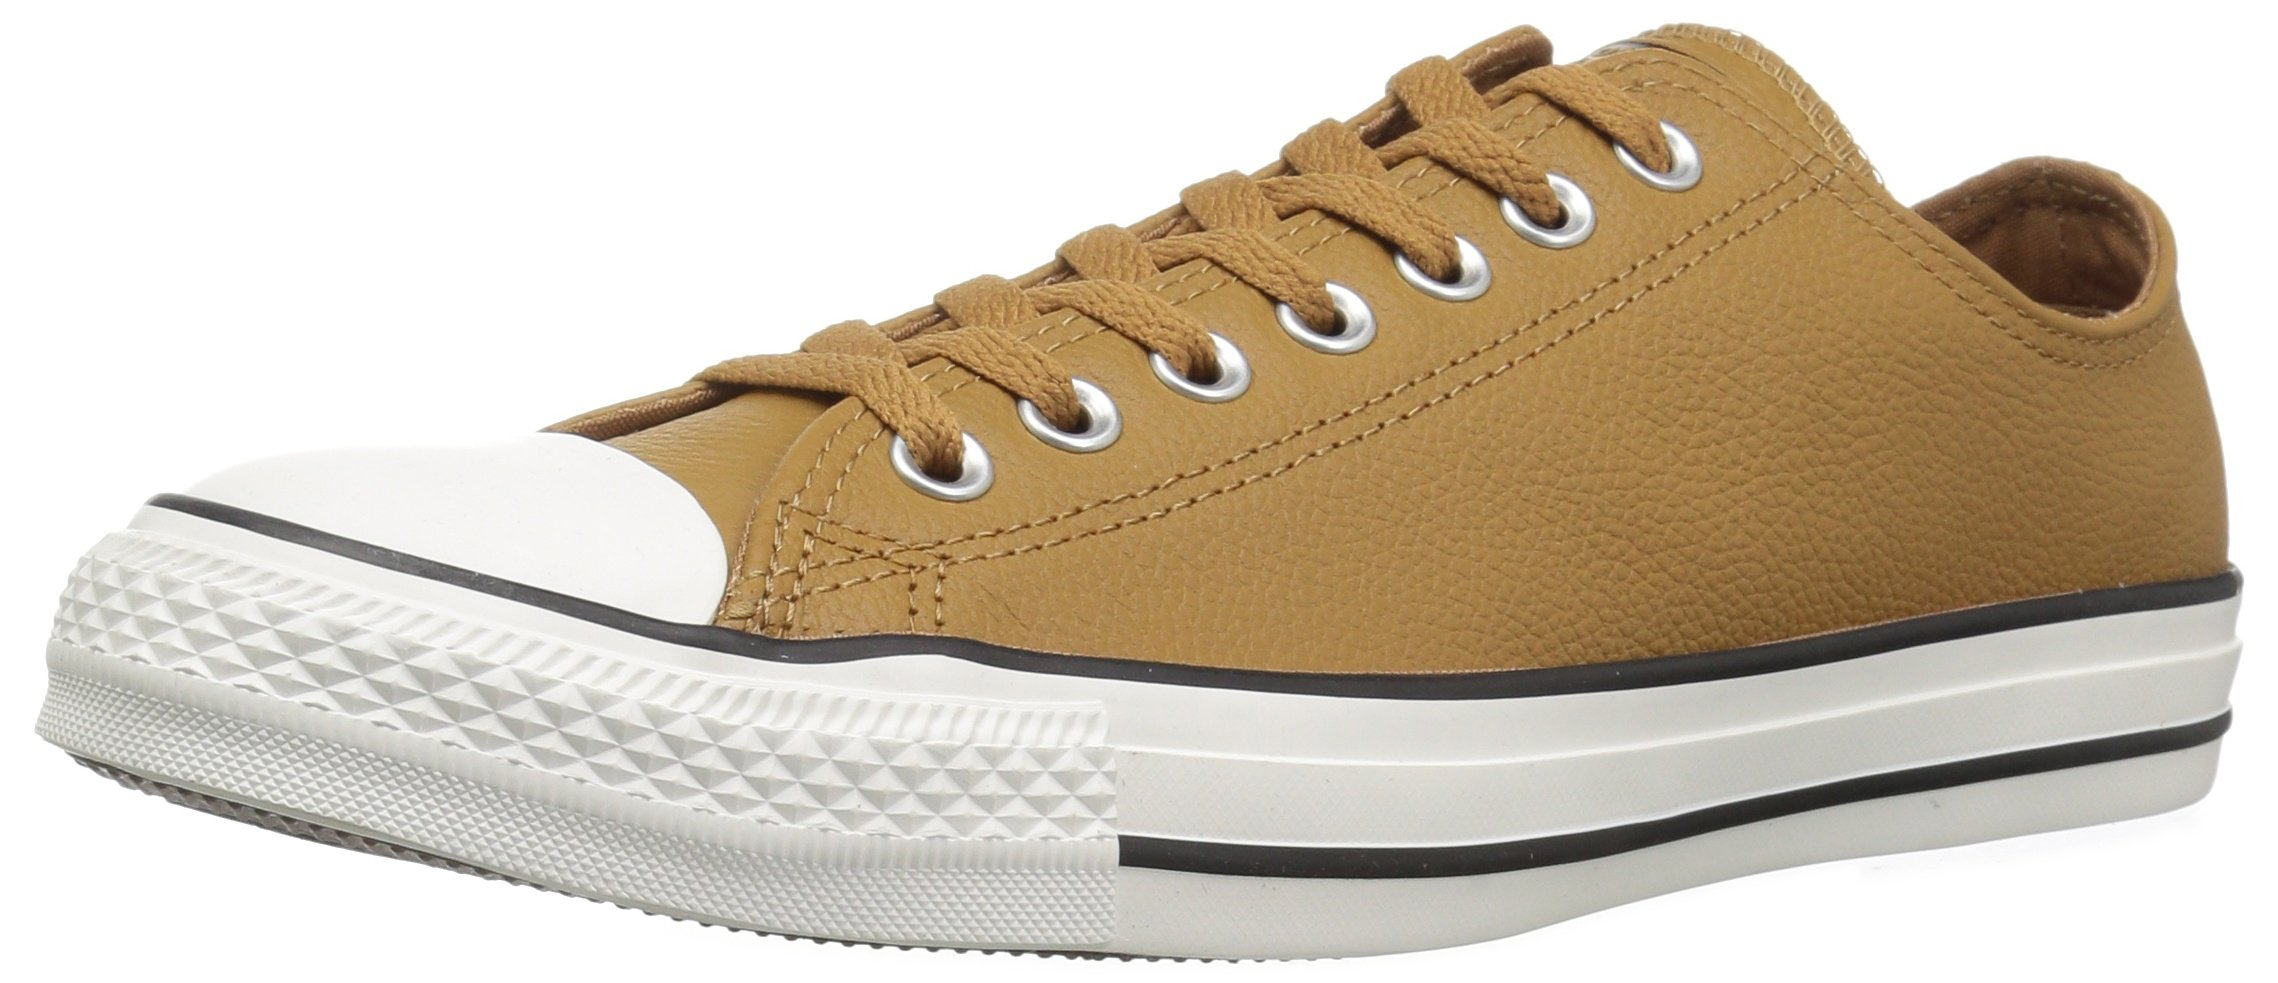 Converse Chuck Taylor All Star Tumbled Leather Low